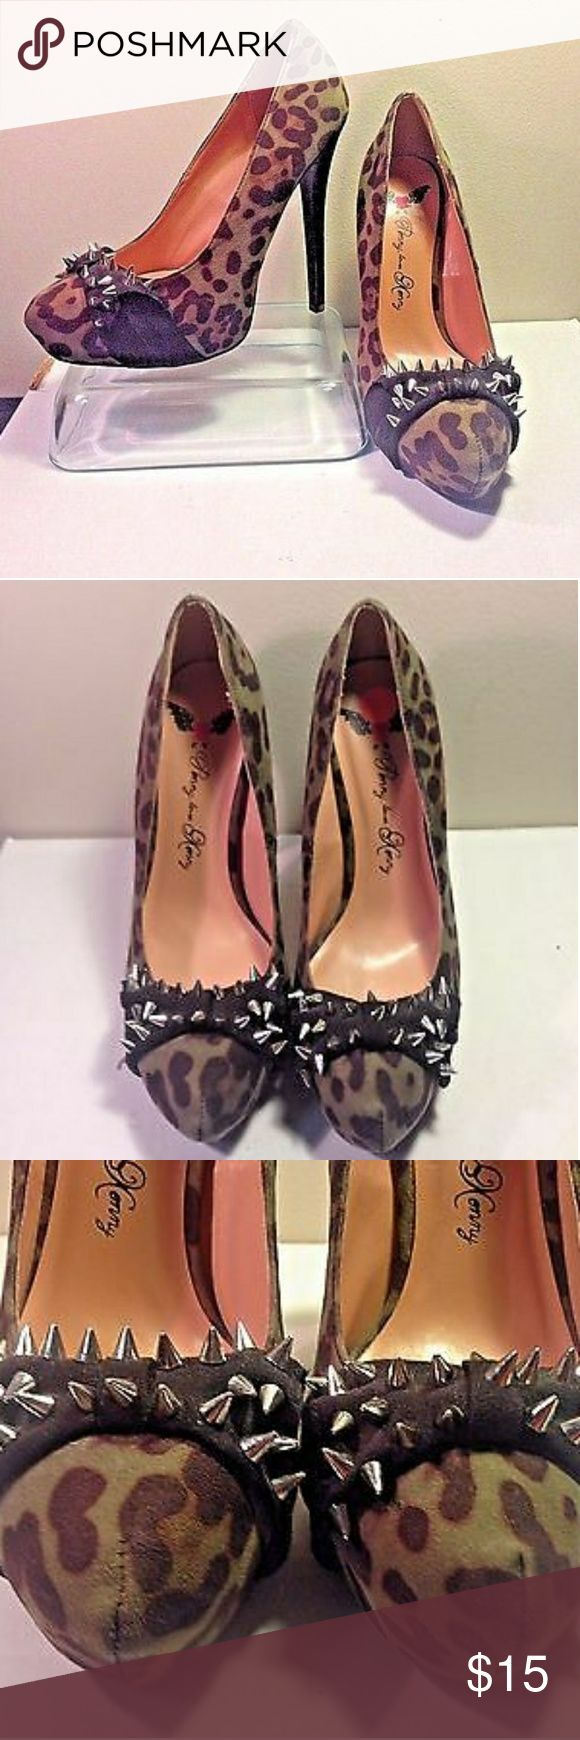 NWOT Penny Loves Kenny Faux Suede Heels Leopard platform pump. Silver metal spikes. Size 9 1/2 excellent condition NEVER BEEN WORN! Hot and sexy. Make your legs look super long! So amazing with a mini skirt or skinny jeans. Penny Loves Kenny Shoes Heels